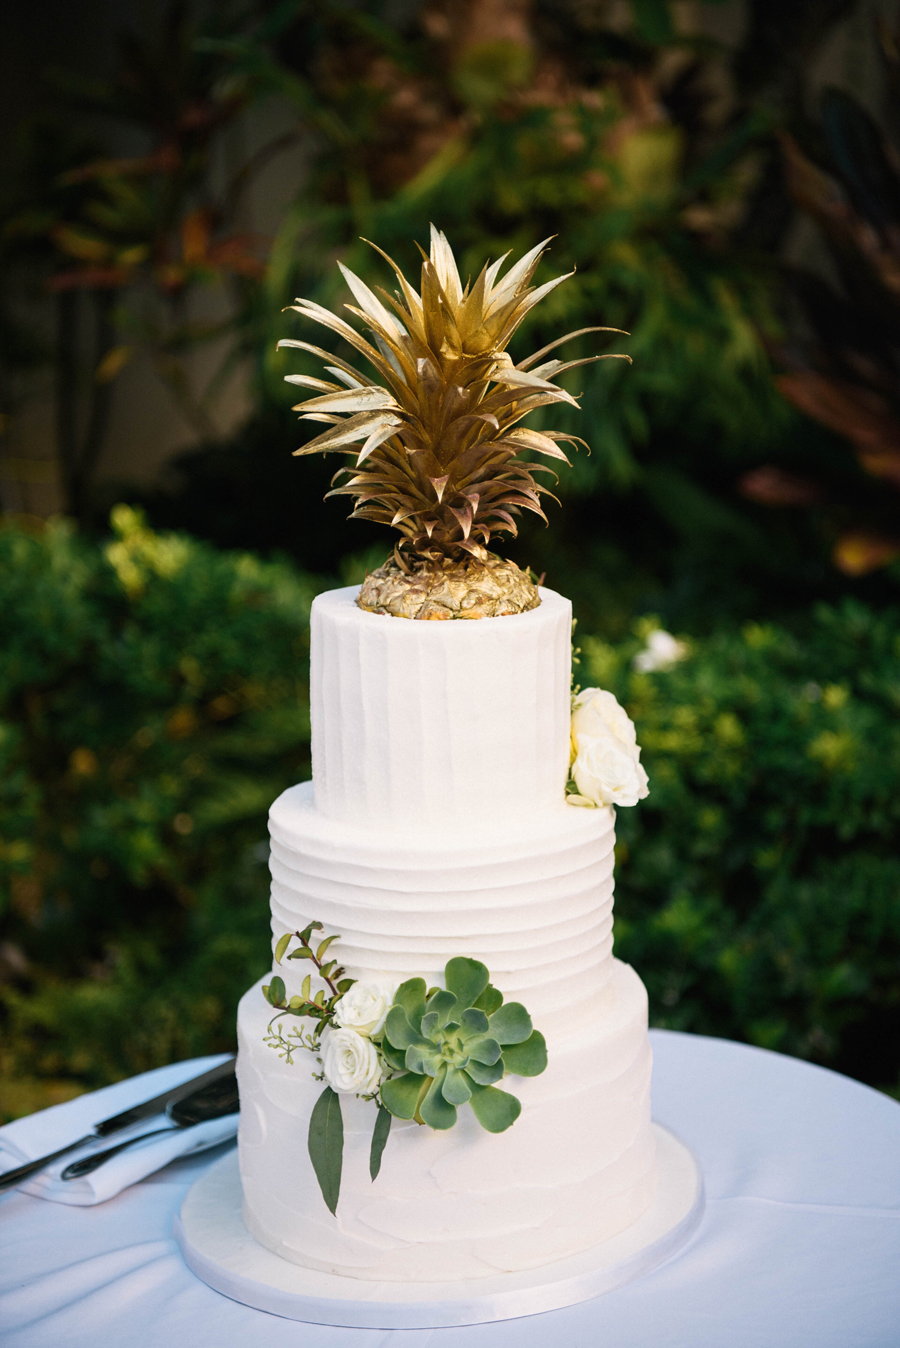 Pineapple Wedding Cakes - Pineapple Wedding Cake